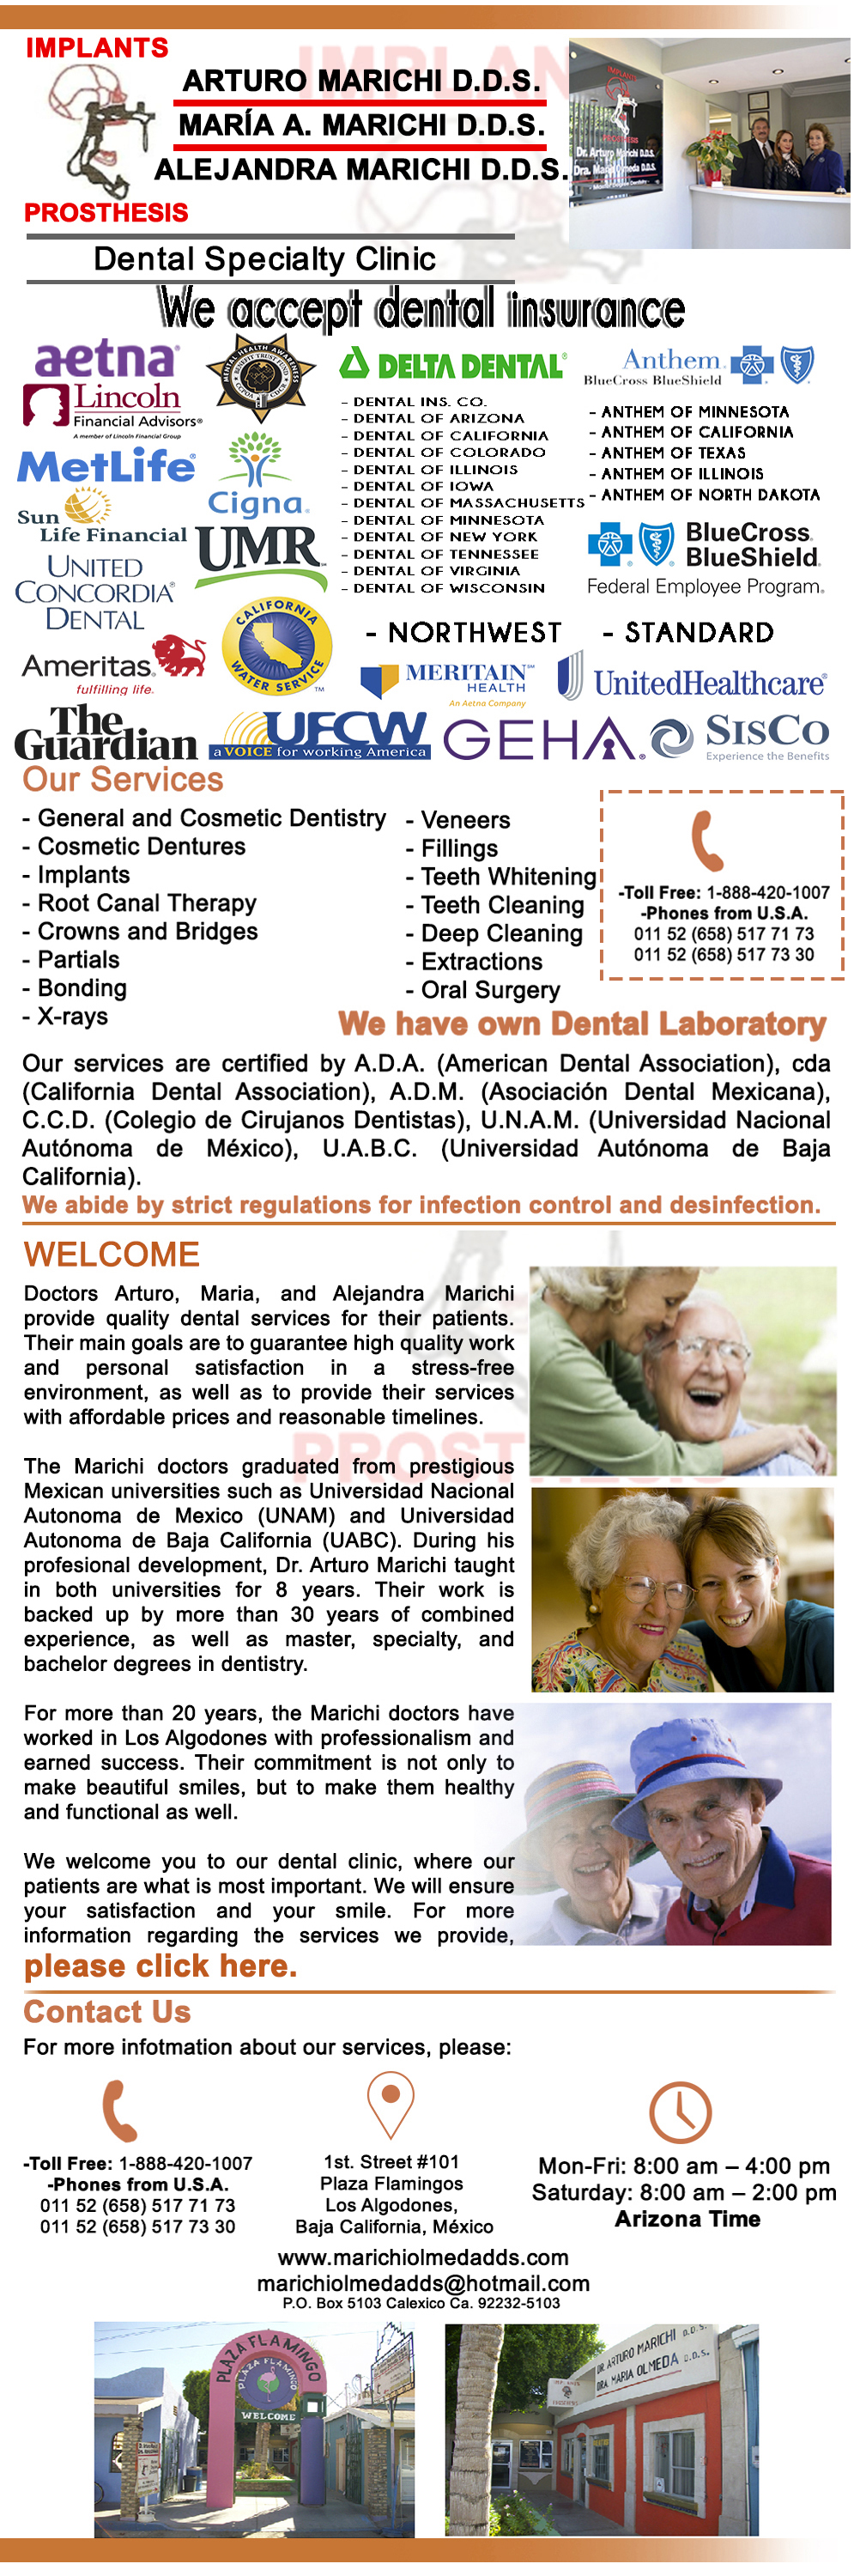 Dr. Arturo Marichi D.D.S. Dra. Maria Marichi D.D.S.  Dra. Alejandra Marichi D.D.S. in Algodones  in Algodones   Our Services